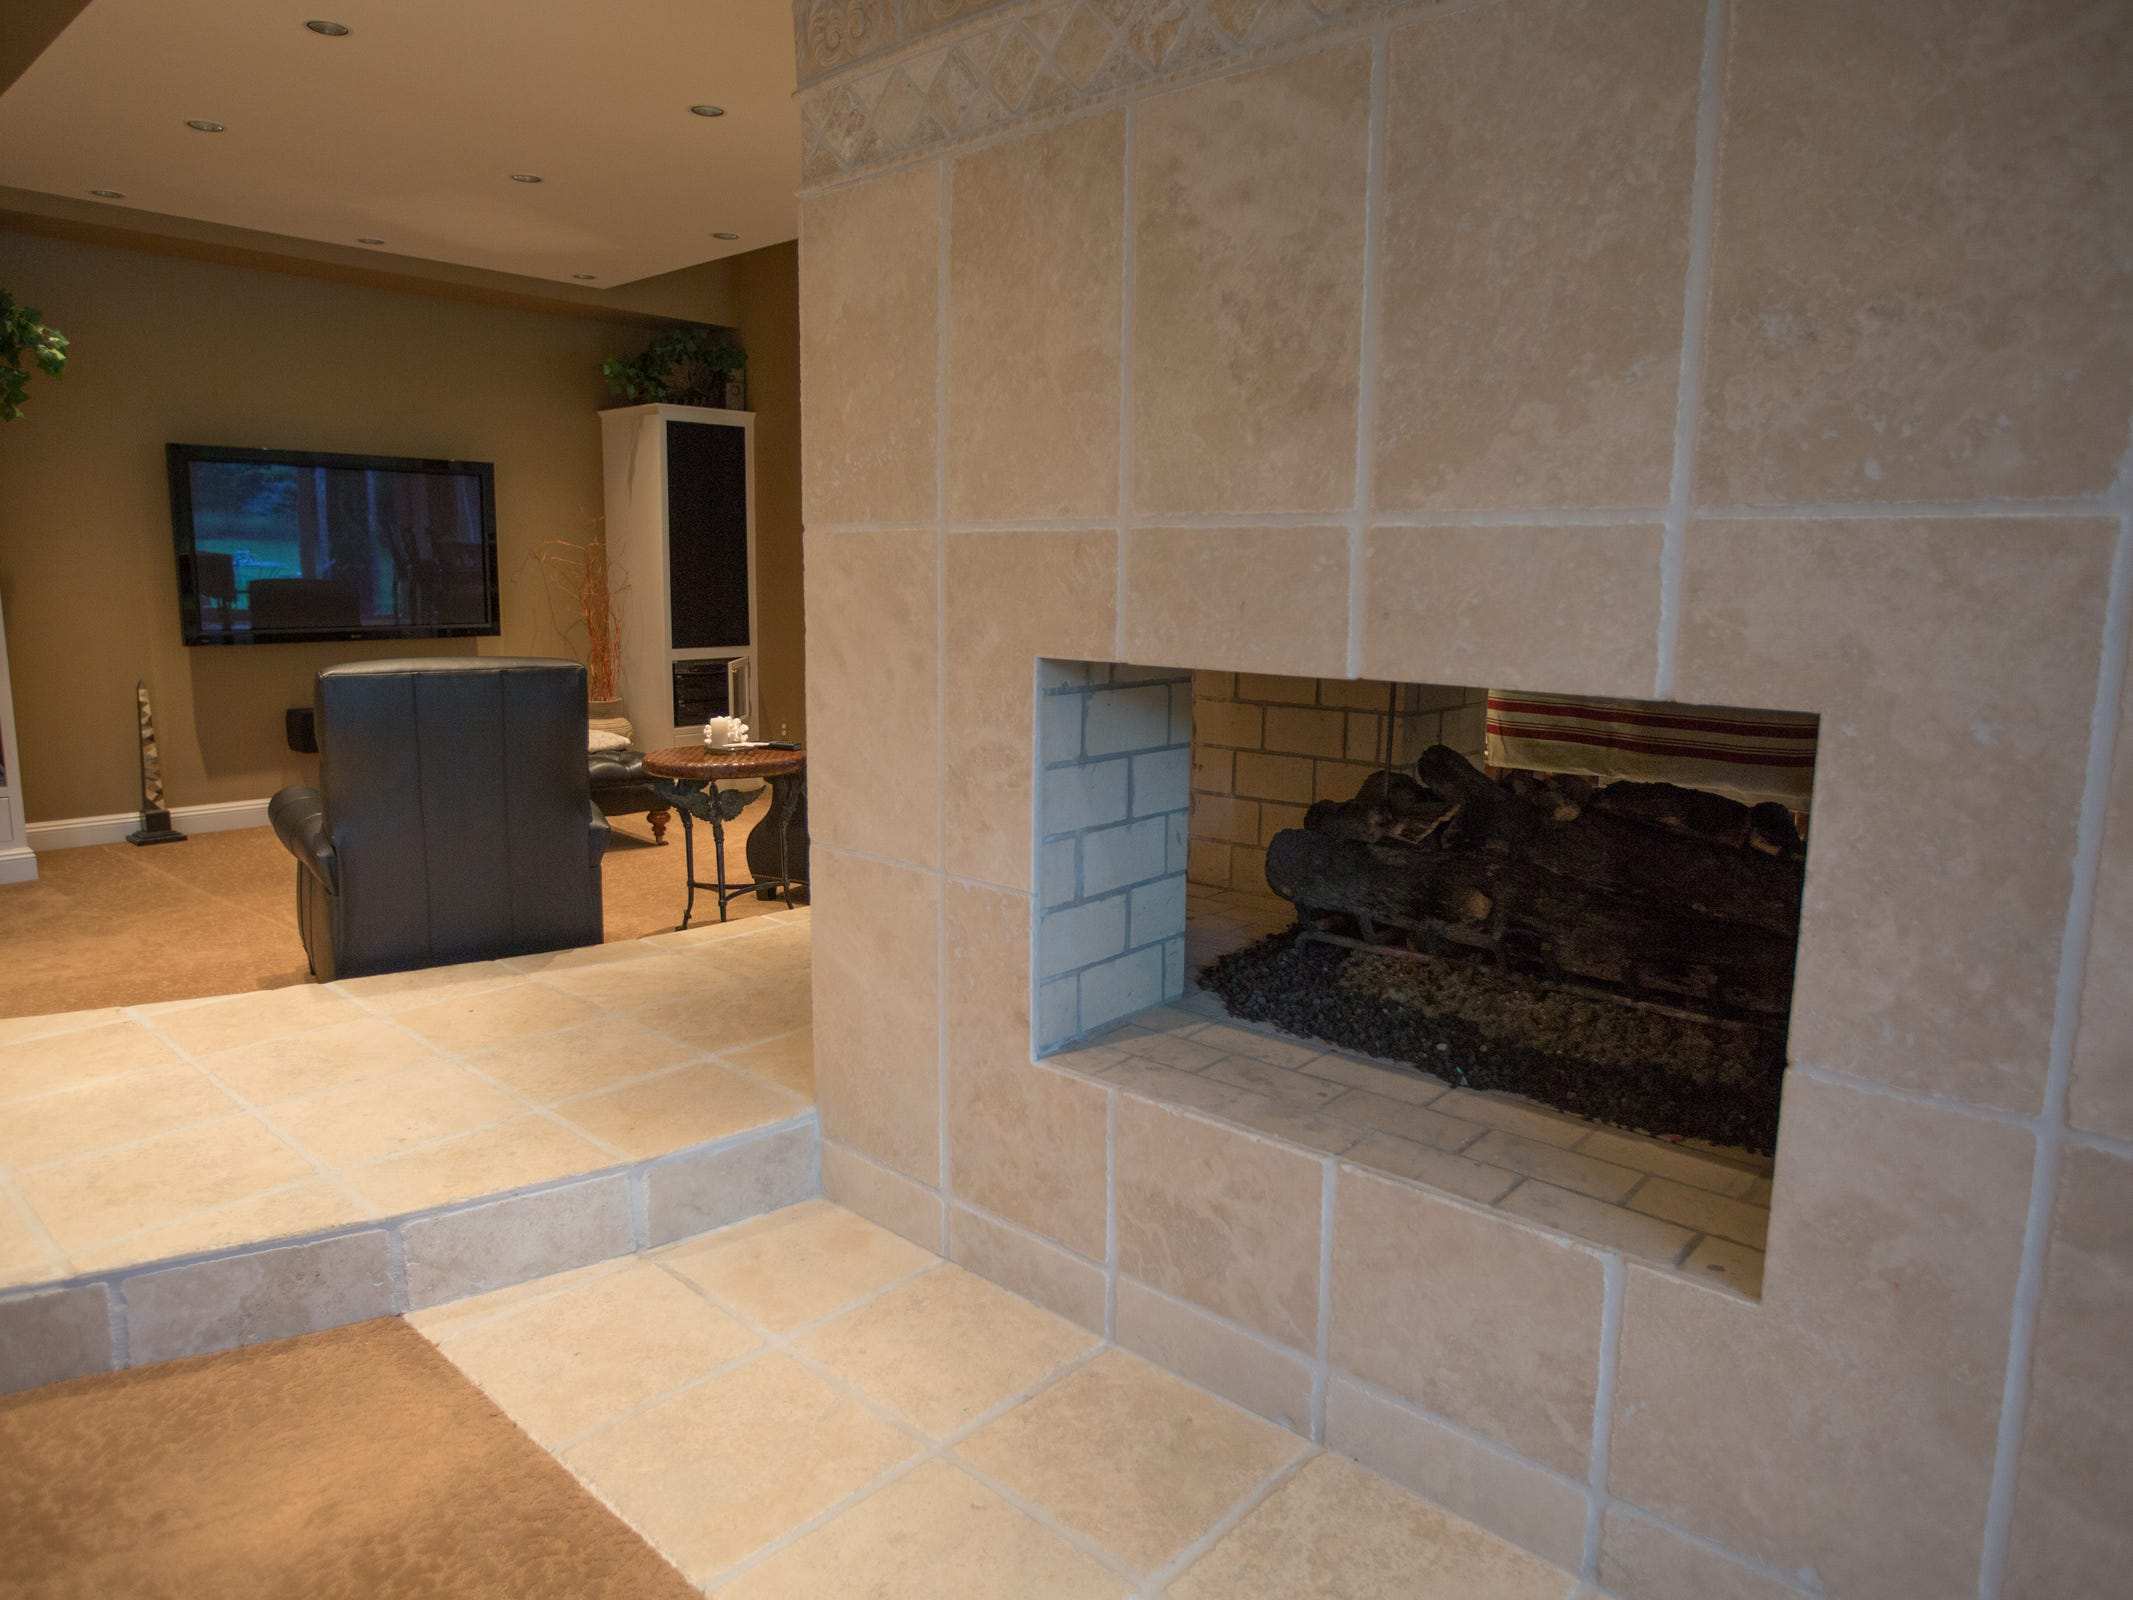 The third imposing fireplace is in the lower level party area. It has a large firebox, openings on four sides and powerful gas jets to fuel a bonfire. In all, there are five fireplaces.